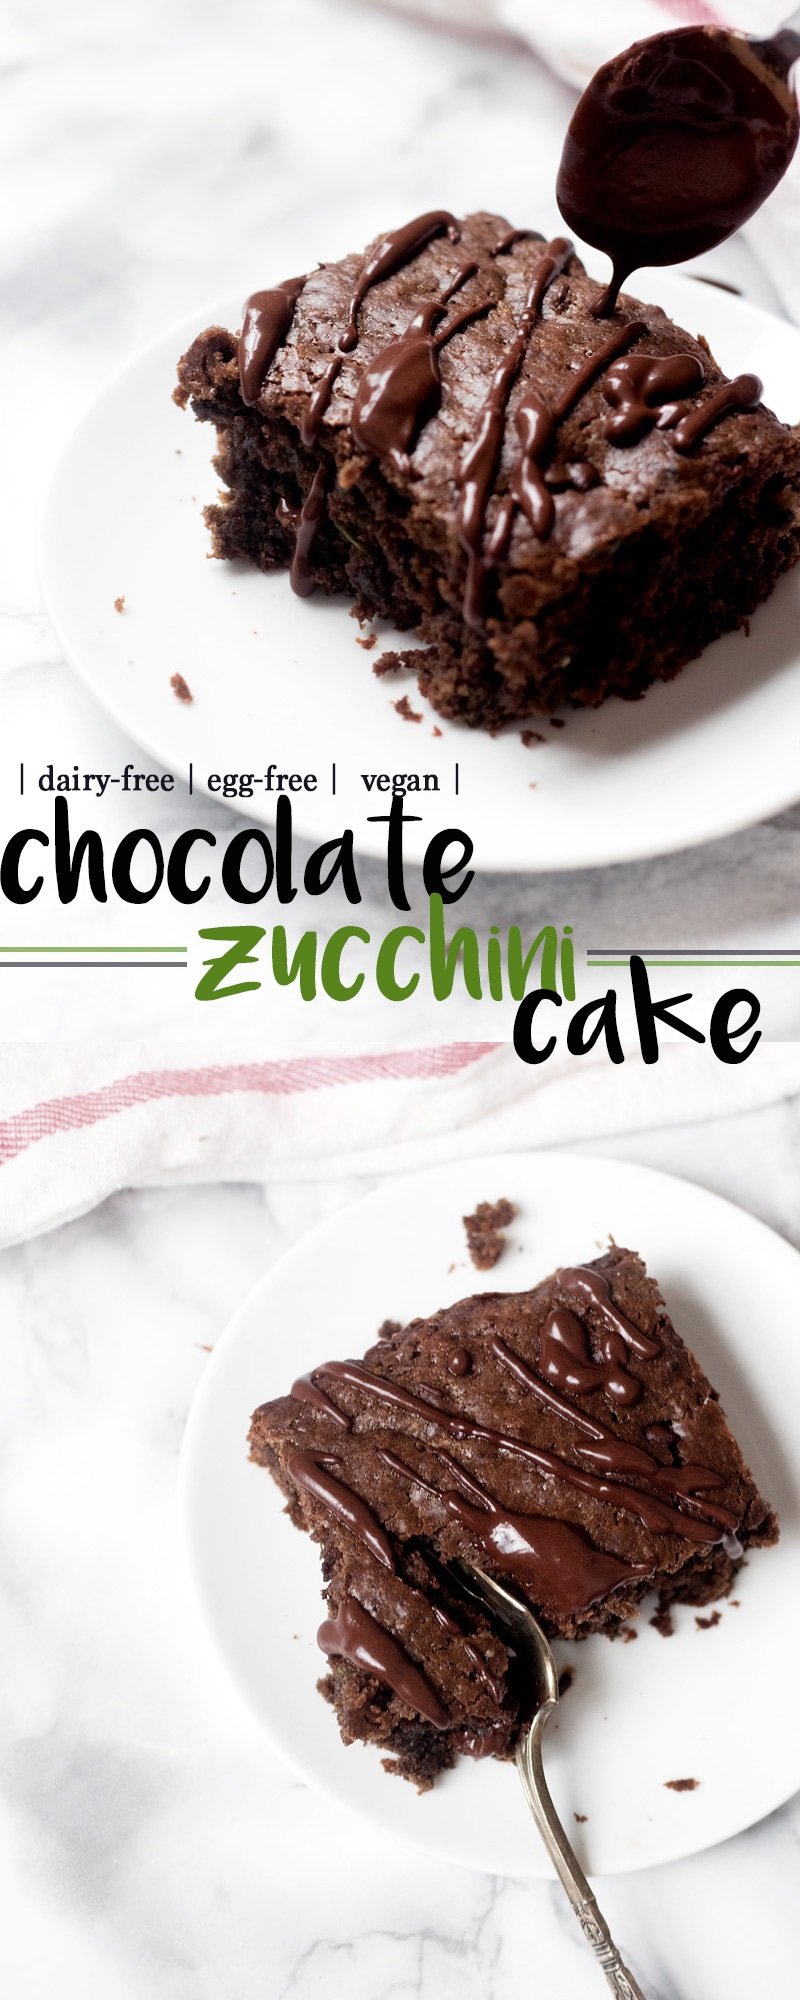 Vegan Chocolate Zucchini Cake Recipe with Optional Chocolate Drizzle